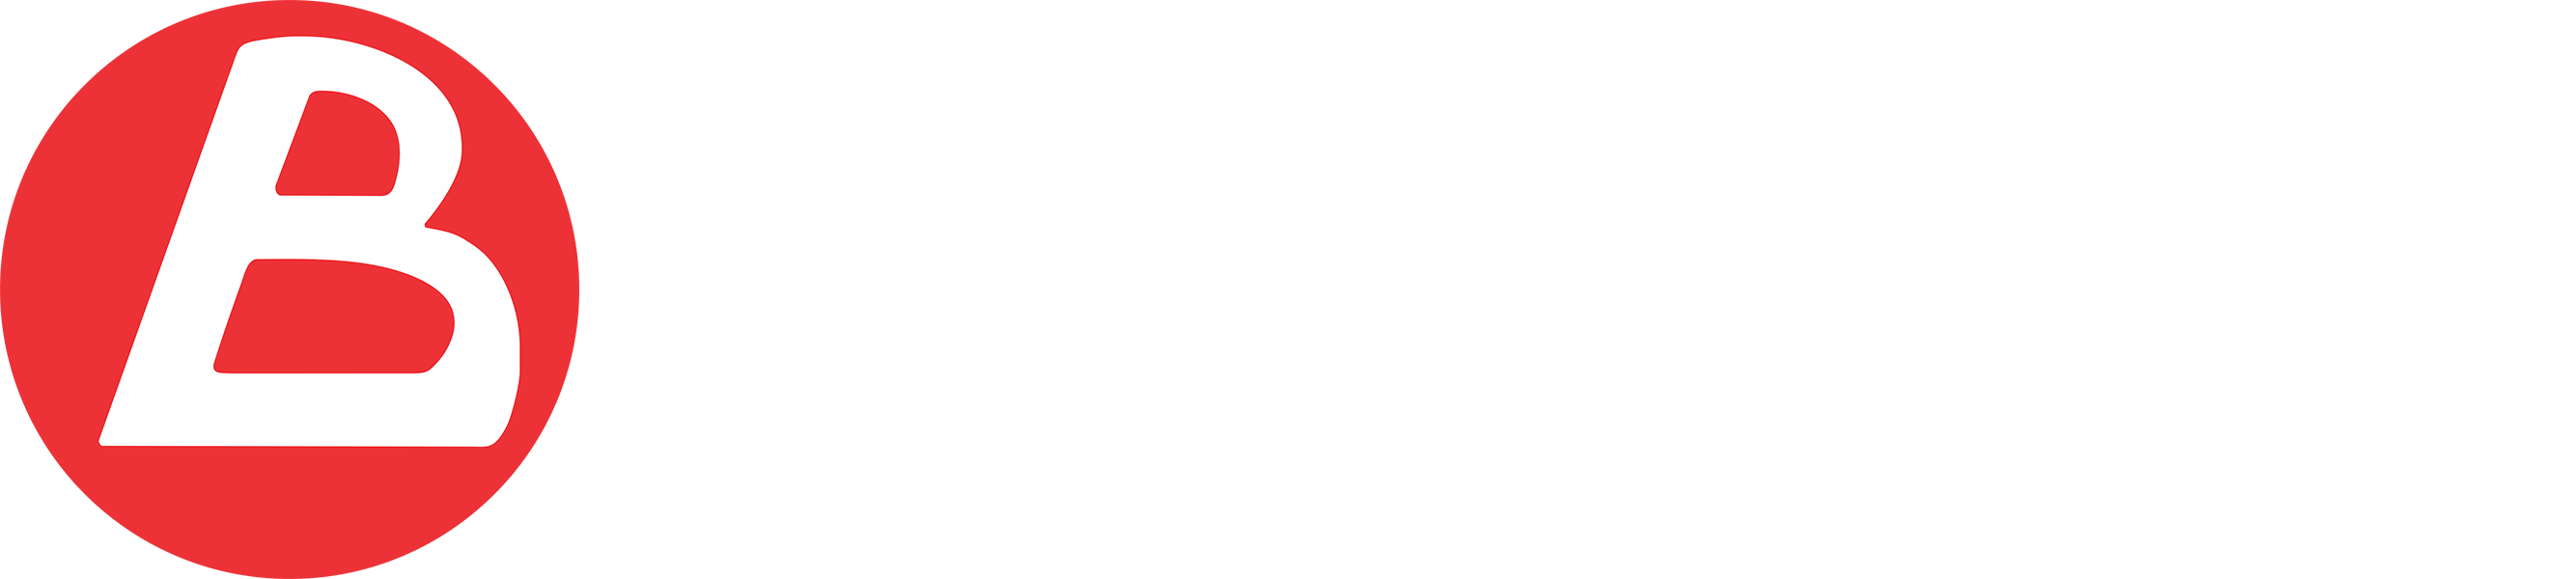 Laboratorio  Brunelli S.R.L